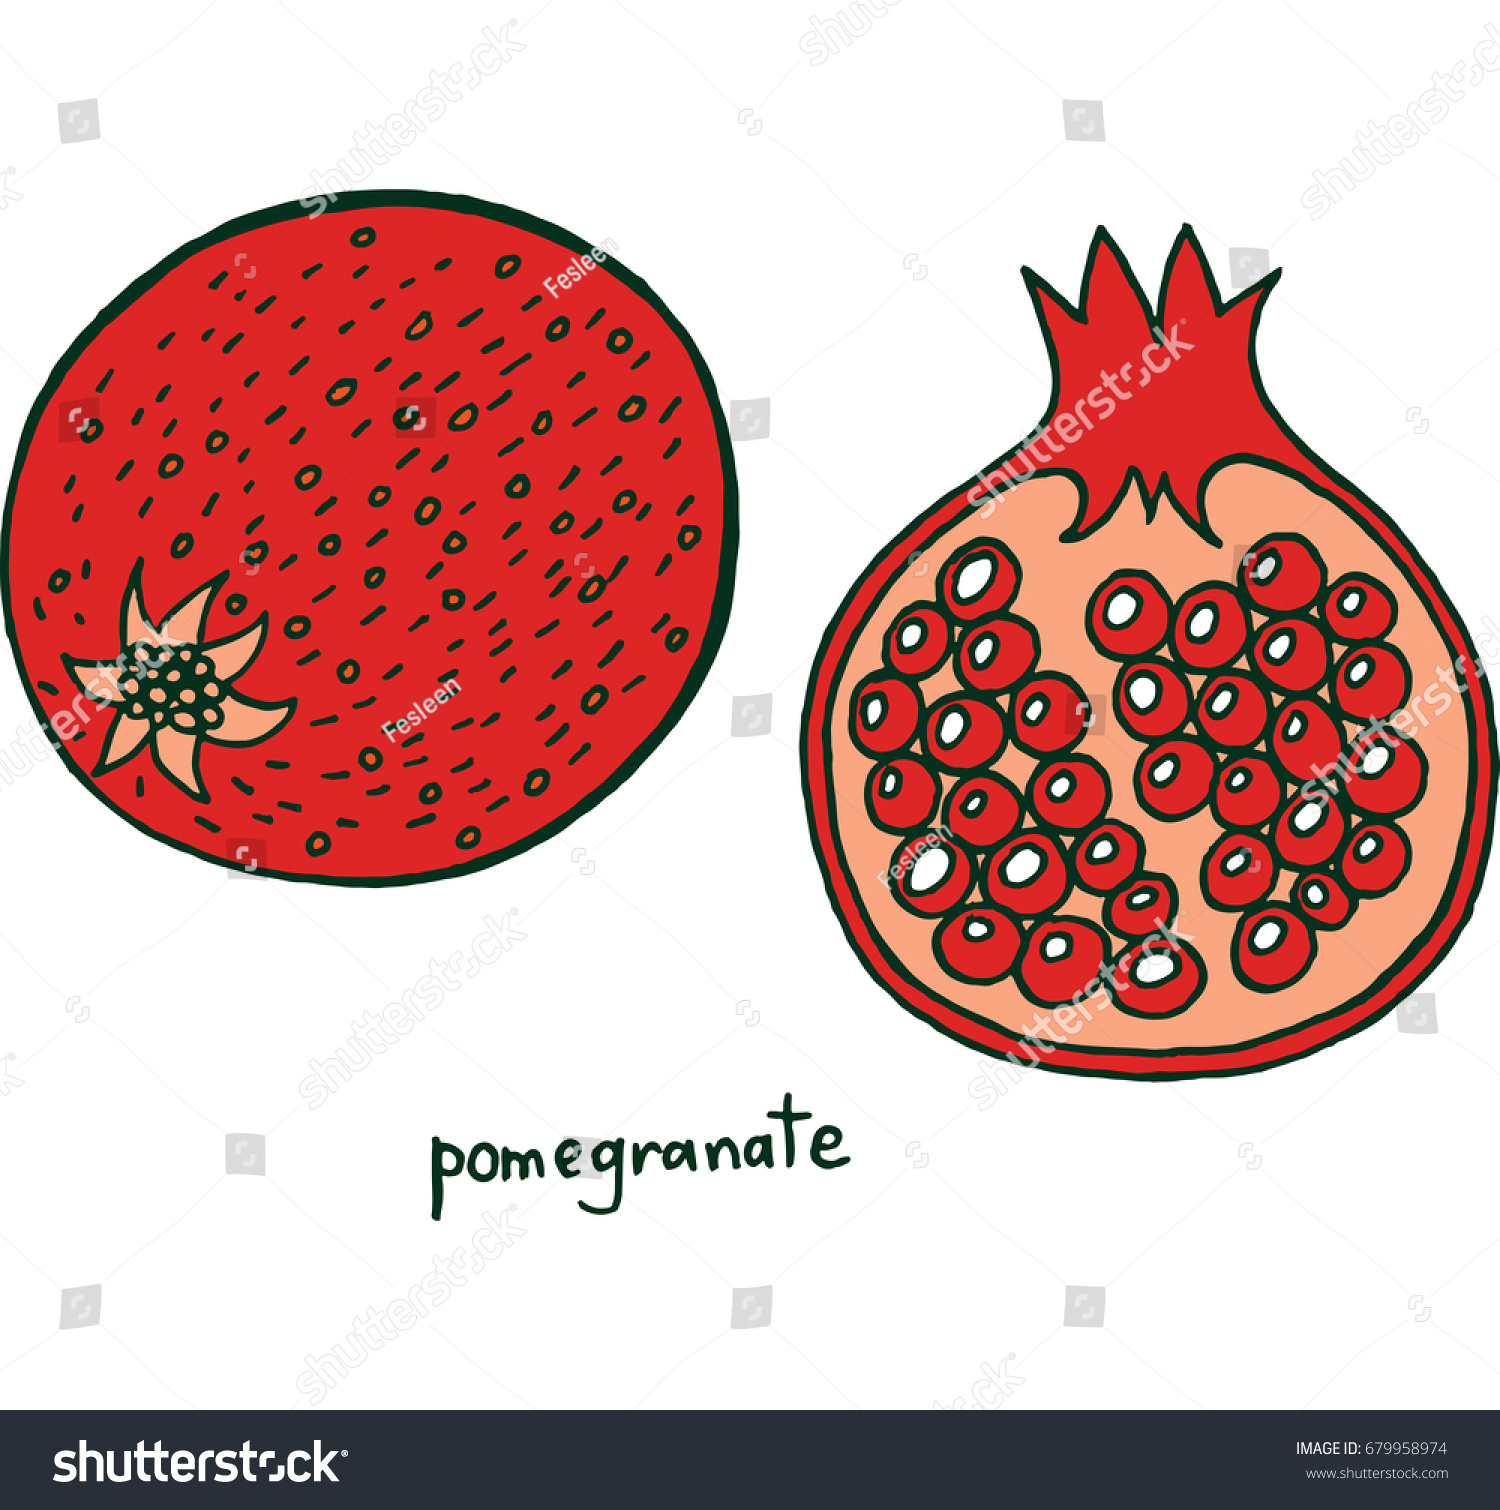 Pomegranate Fruit Coloring Page Graphic Raster Stock Illustration ...